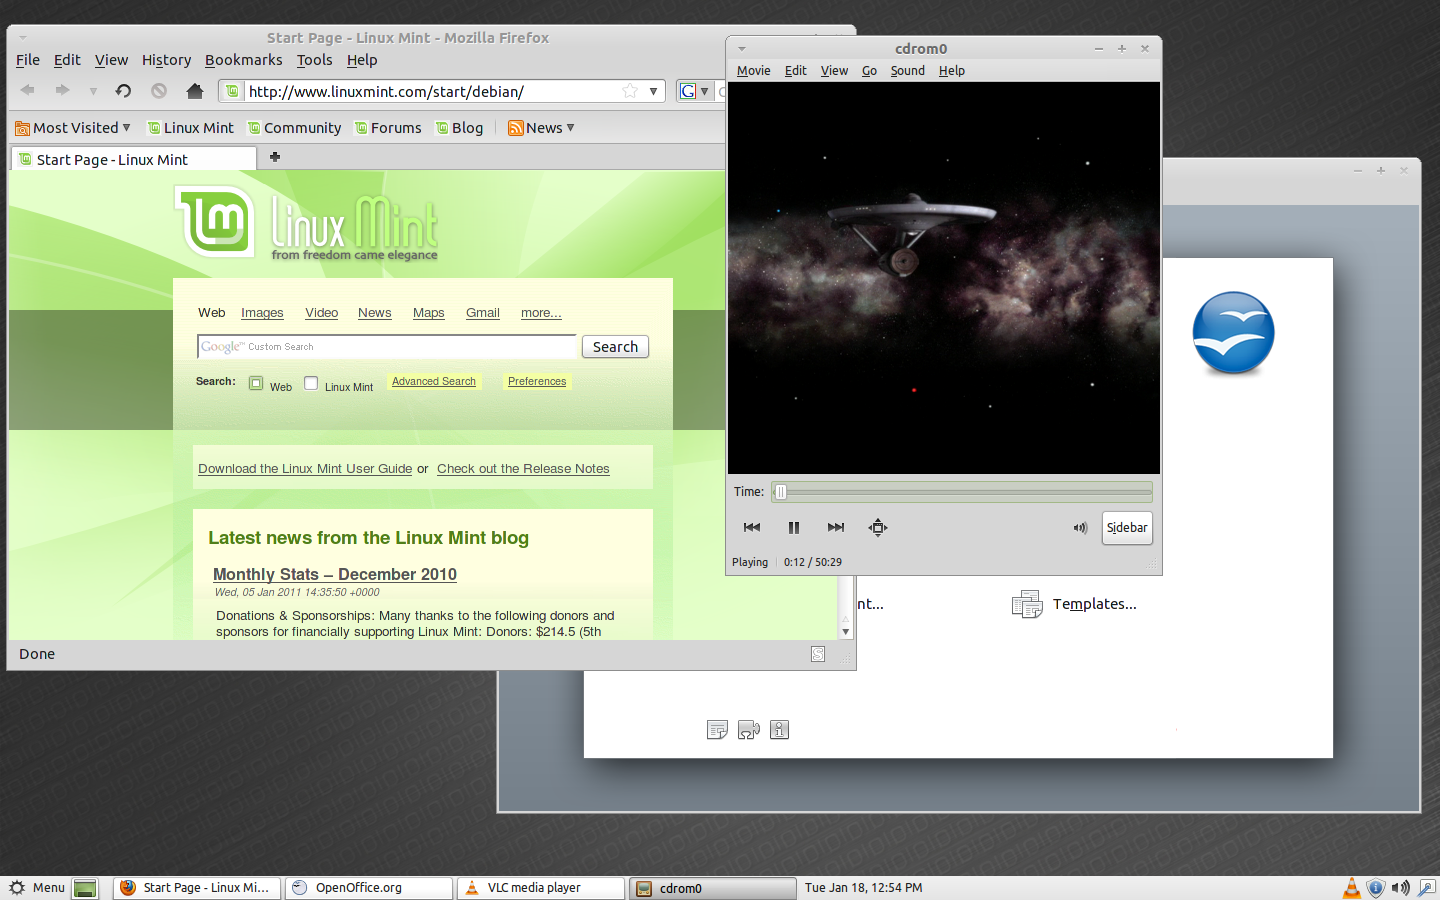 Linux Mint Debian Desktop in Action